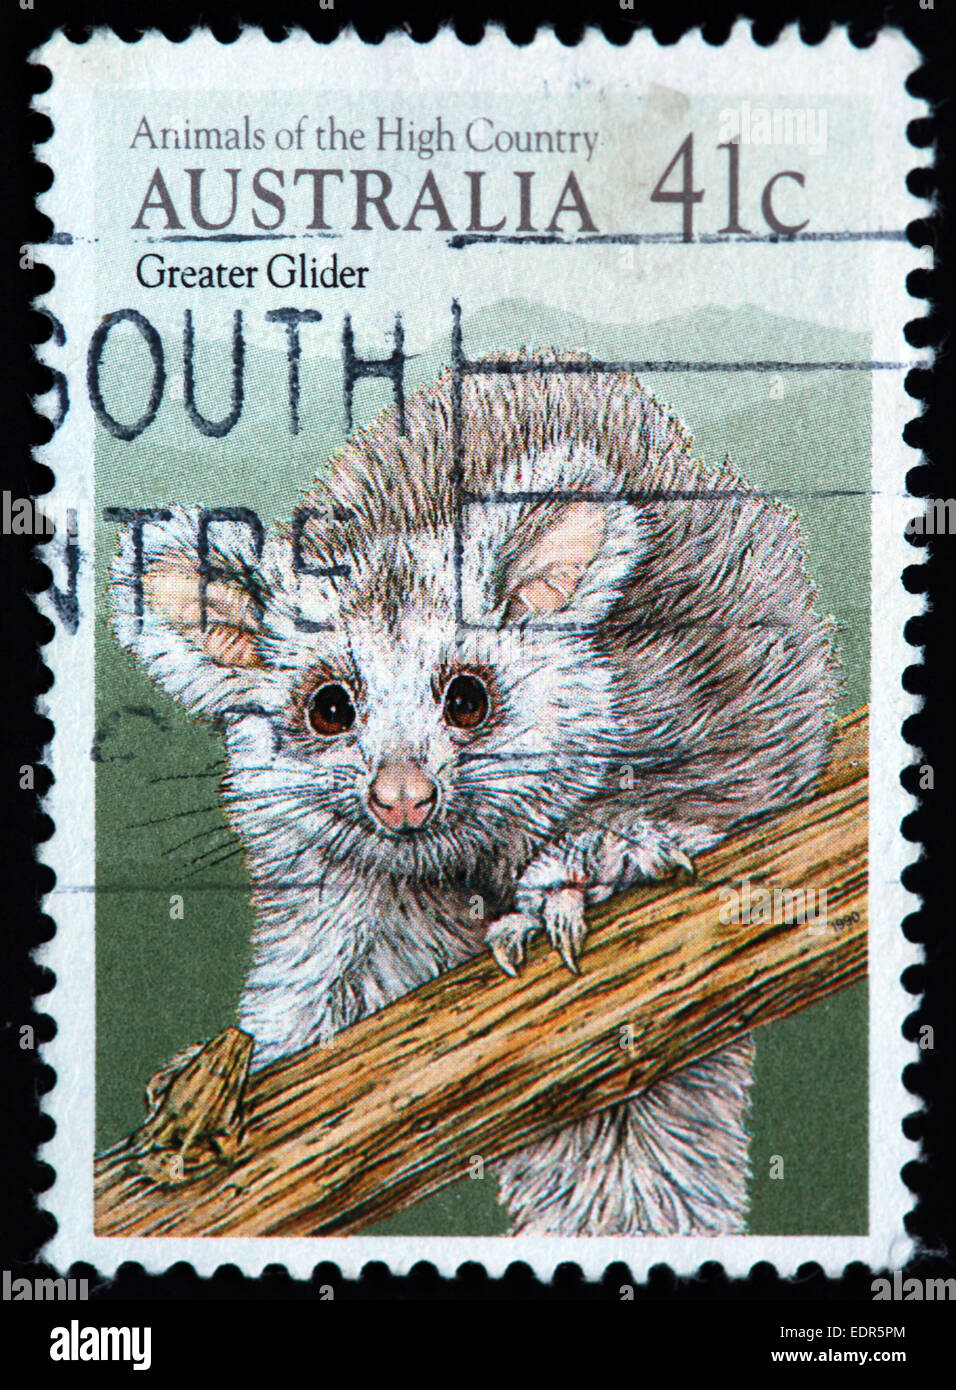 Used and postmarked Australia / Austrailian Stamp 41c Animals of the high country Greater Glider - Stock Image